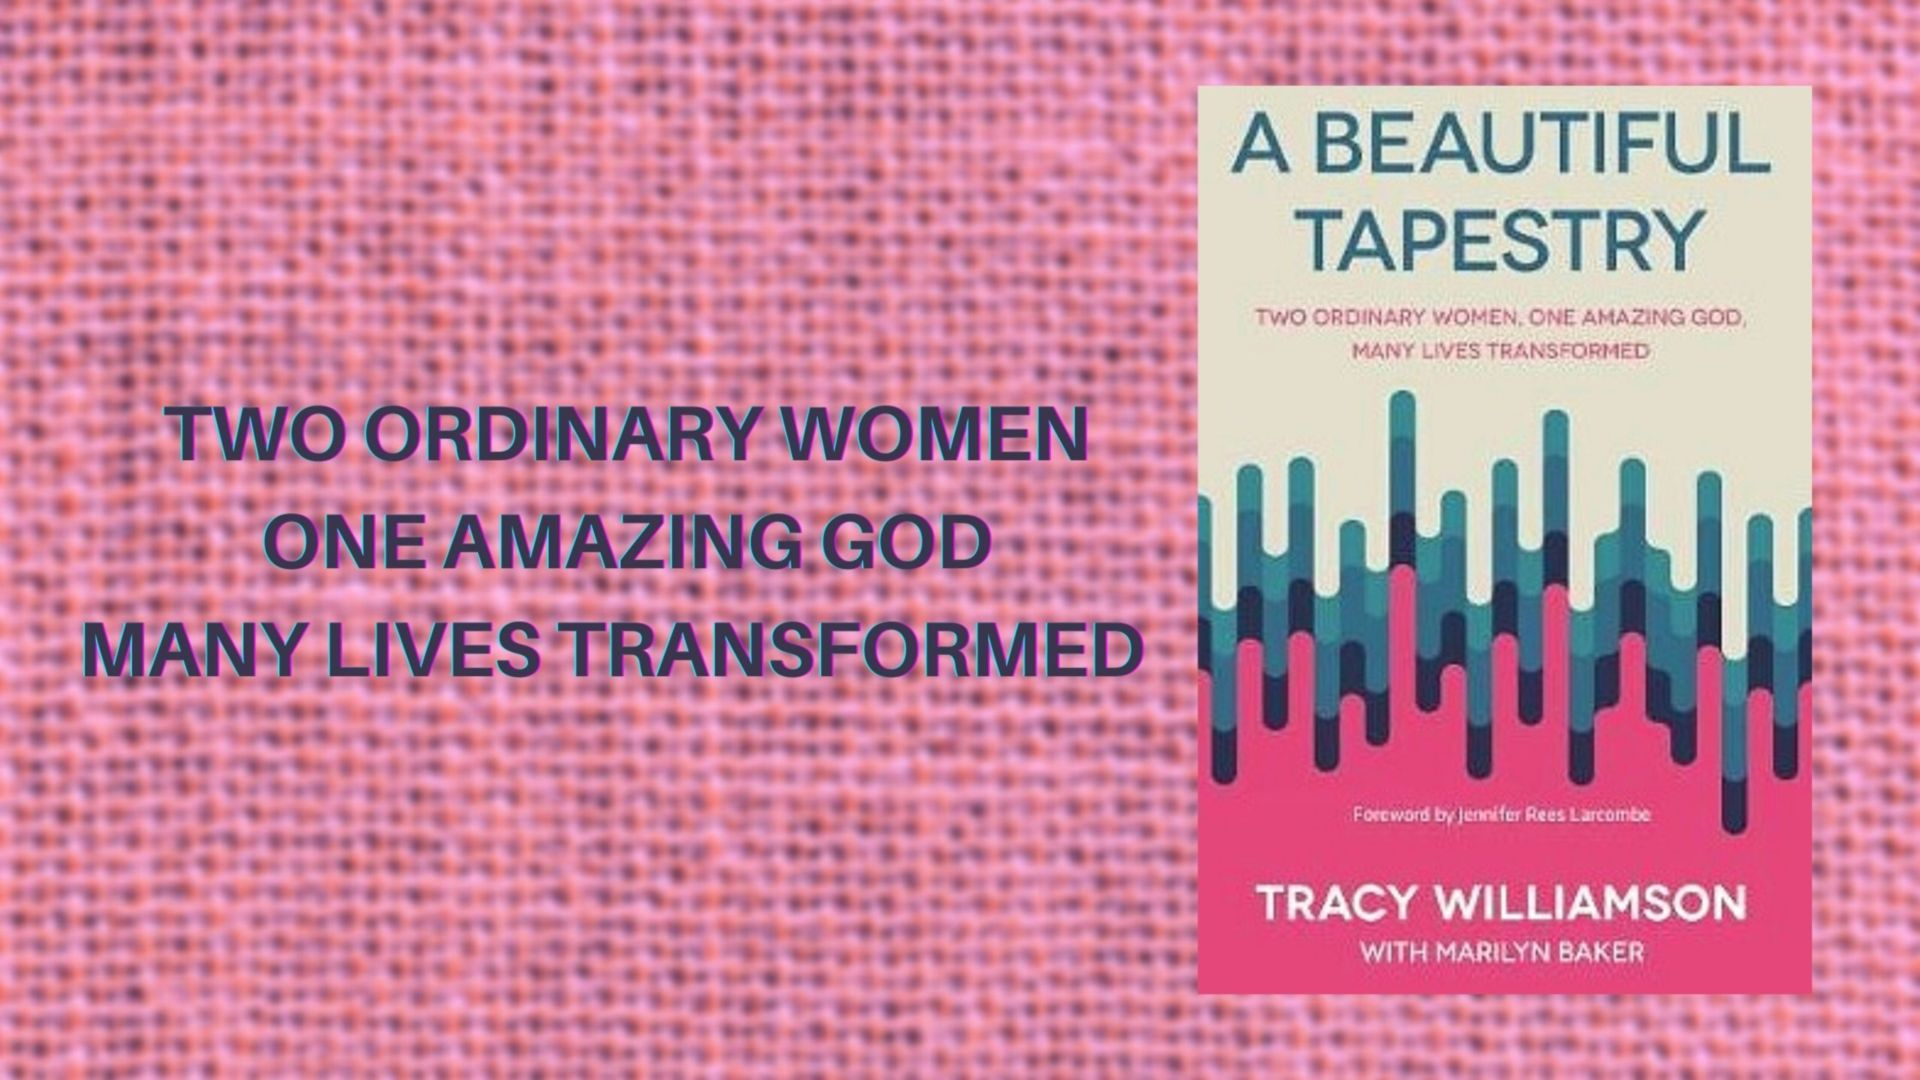 Tracy Williamson and Marilyn Baker talk about their book 'A Beautiful Tapestry'